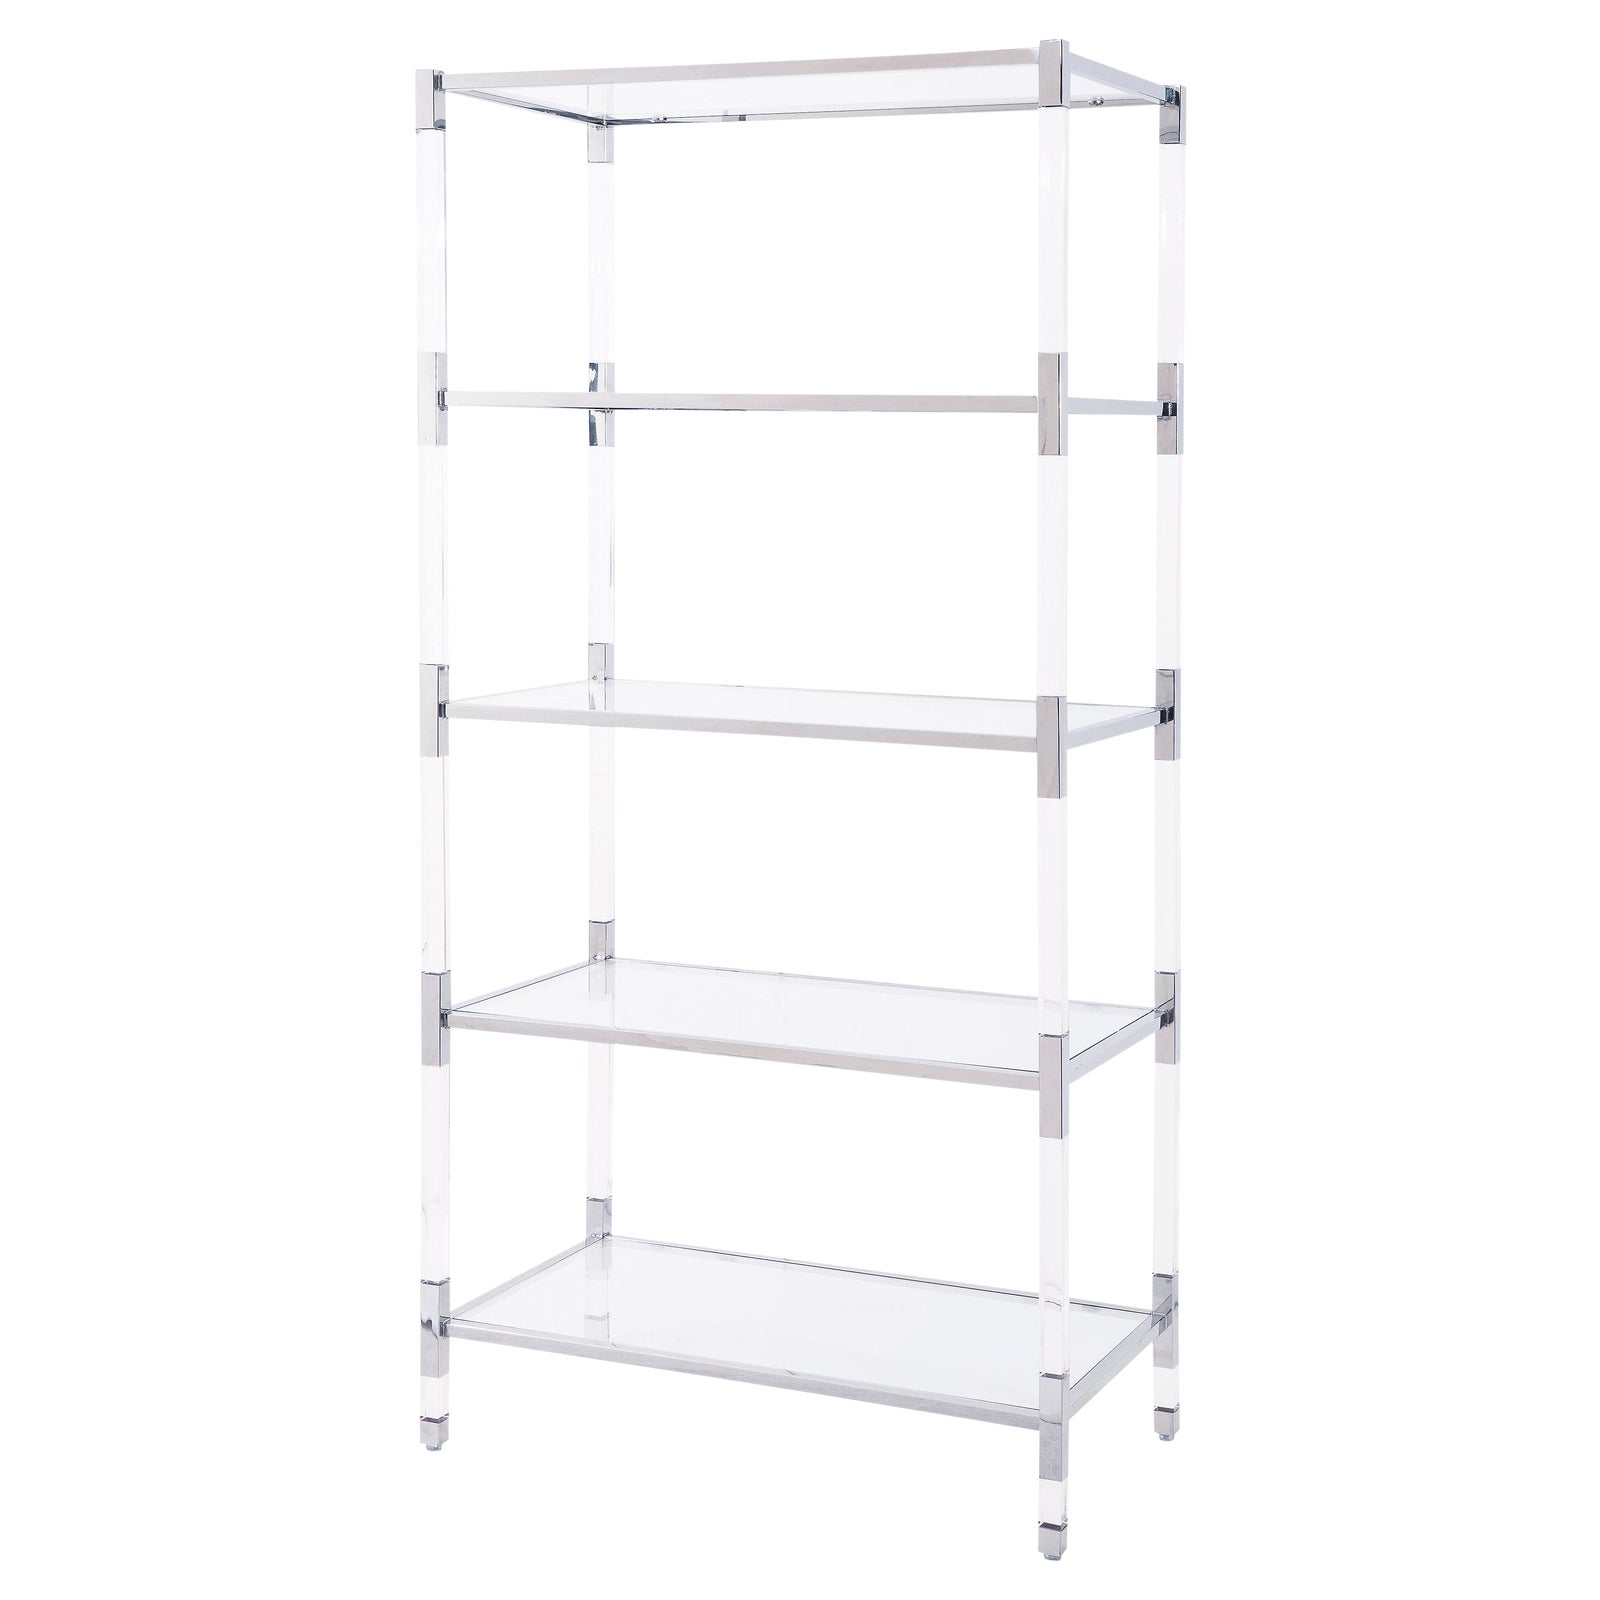 wall full furniture ergonomic mounted shelves jewelry compact bookcase round storage size button slatwall cheap shelf pictures floating acrylic